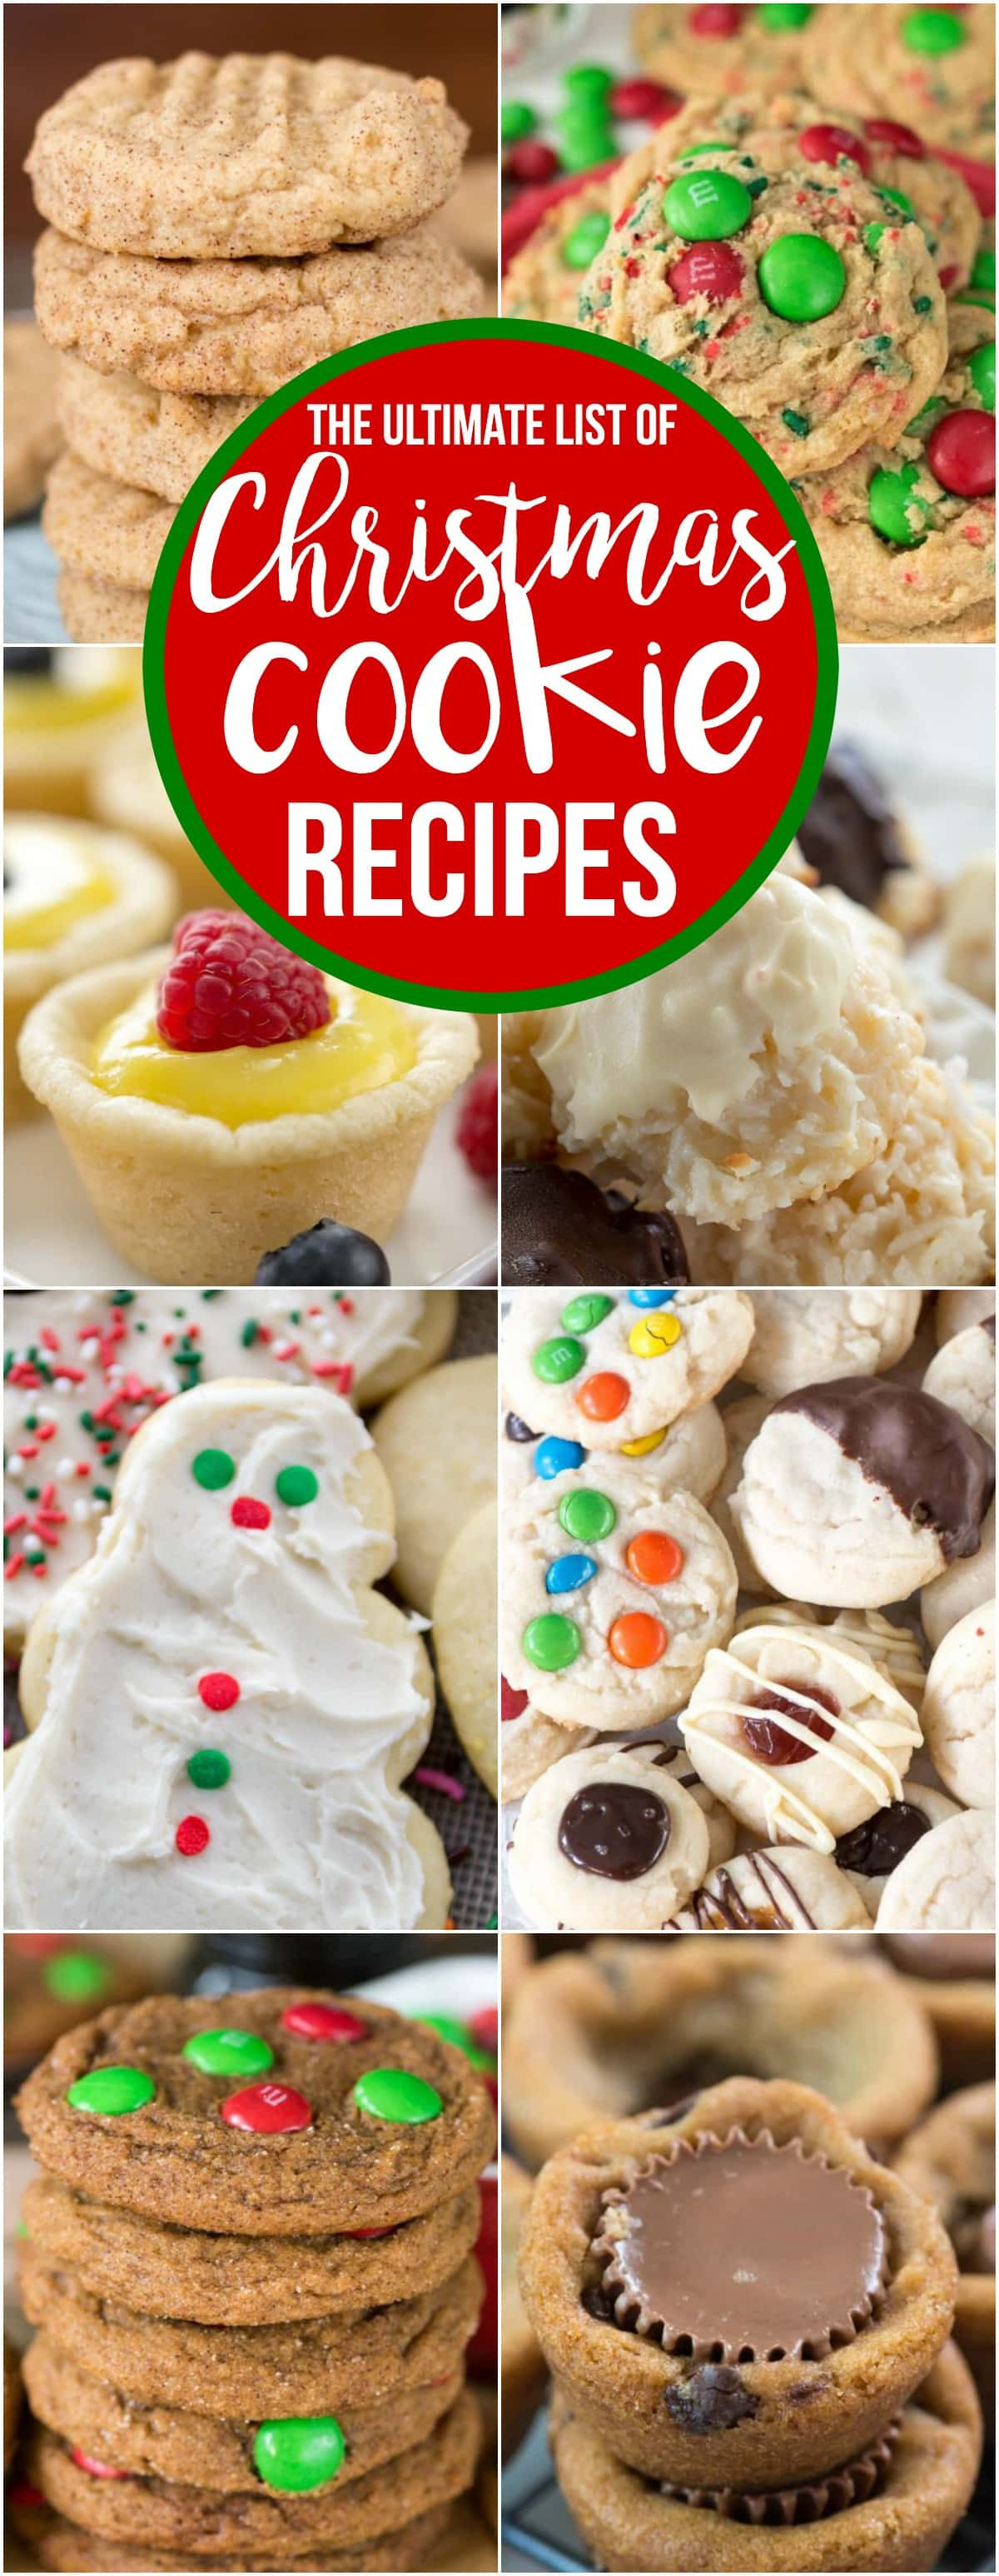 List Of Christmas Cookies  The Ultimate List of Christmas Cookies Crazy for Crust